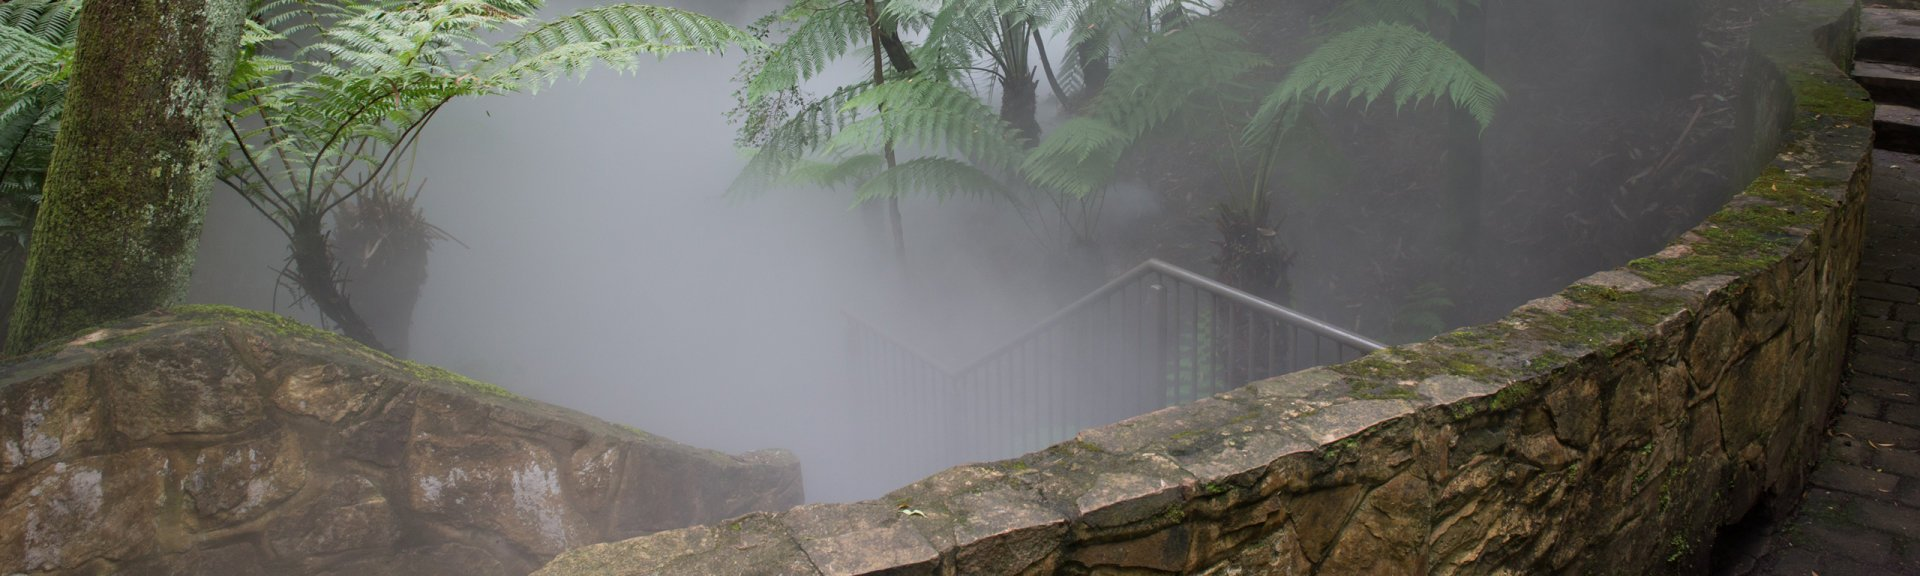 Stone stairs descending into mist